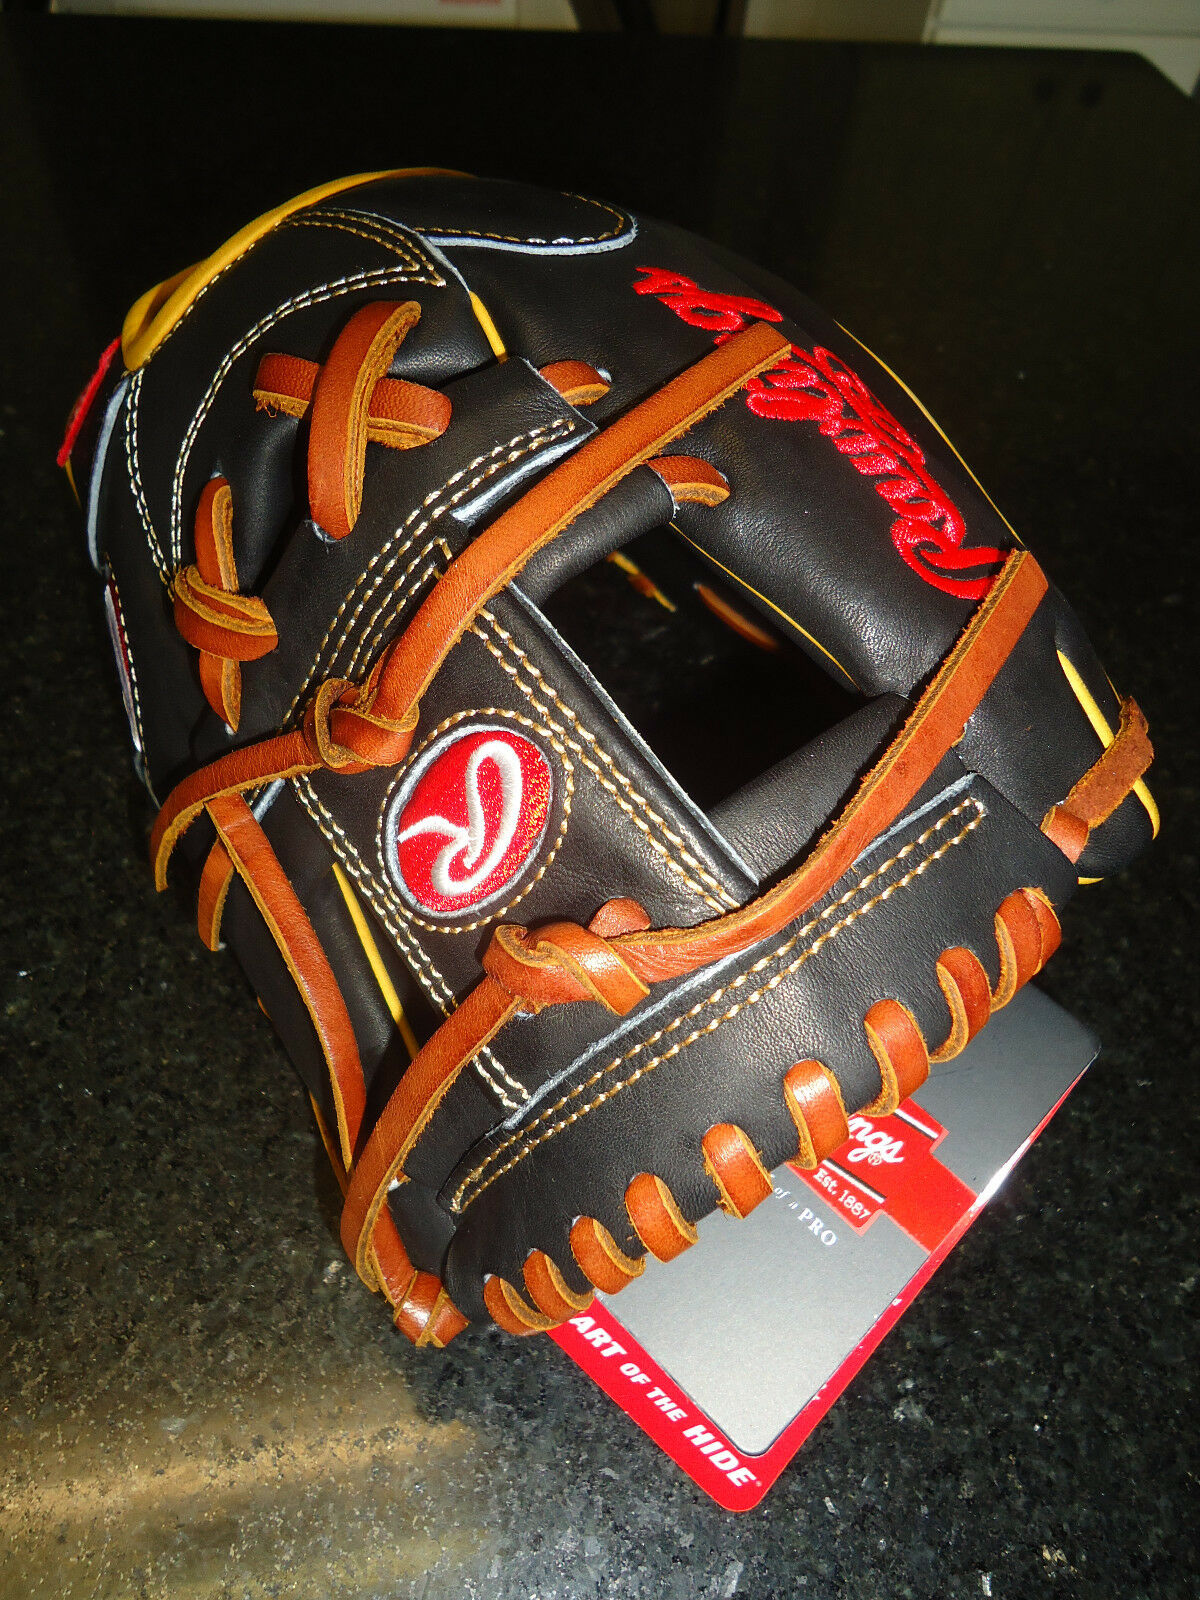 RAWLINGS HEART OF THE HIDE (HOH) LIMITED EDITION PRONP2-2JB GLOVE 11.25